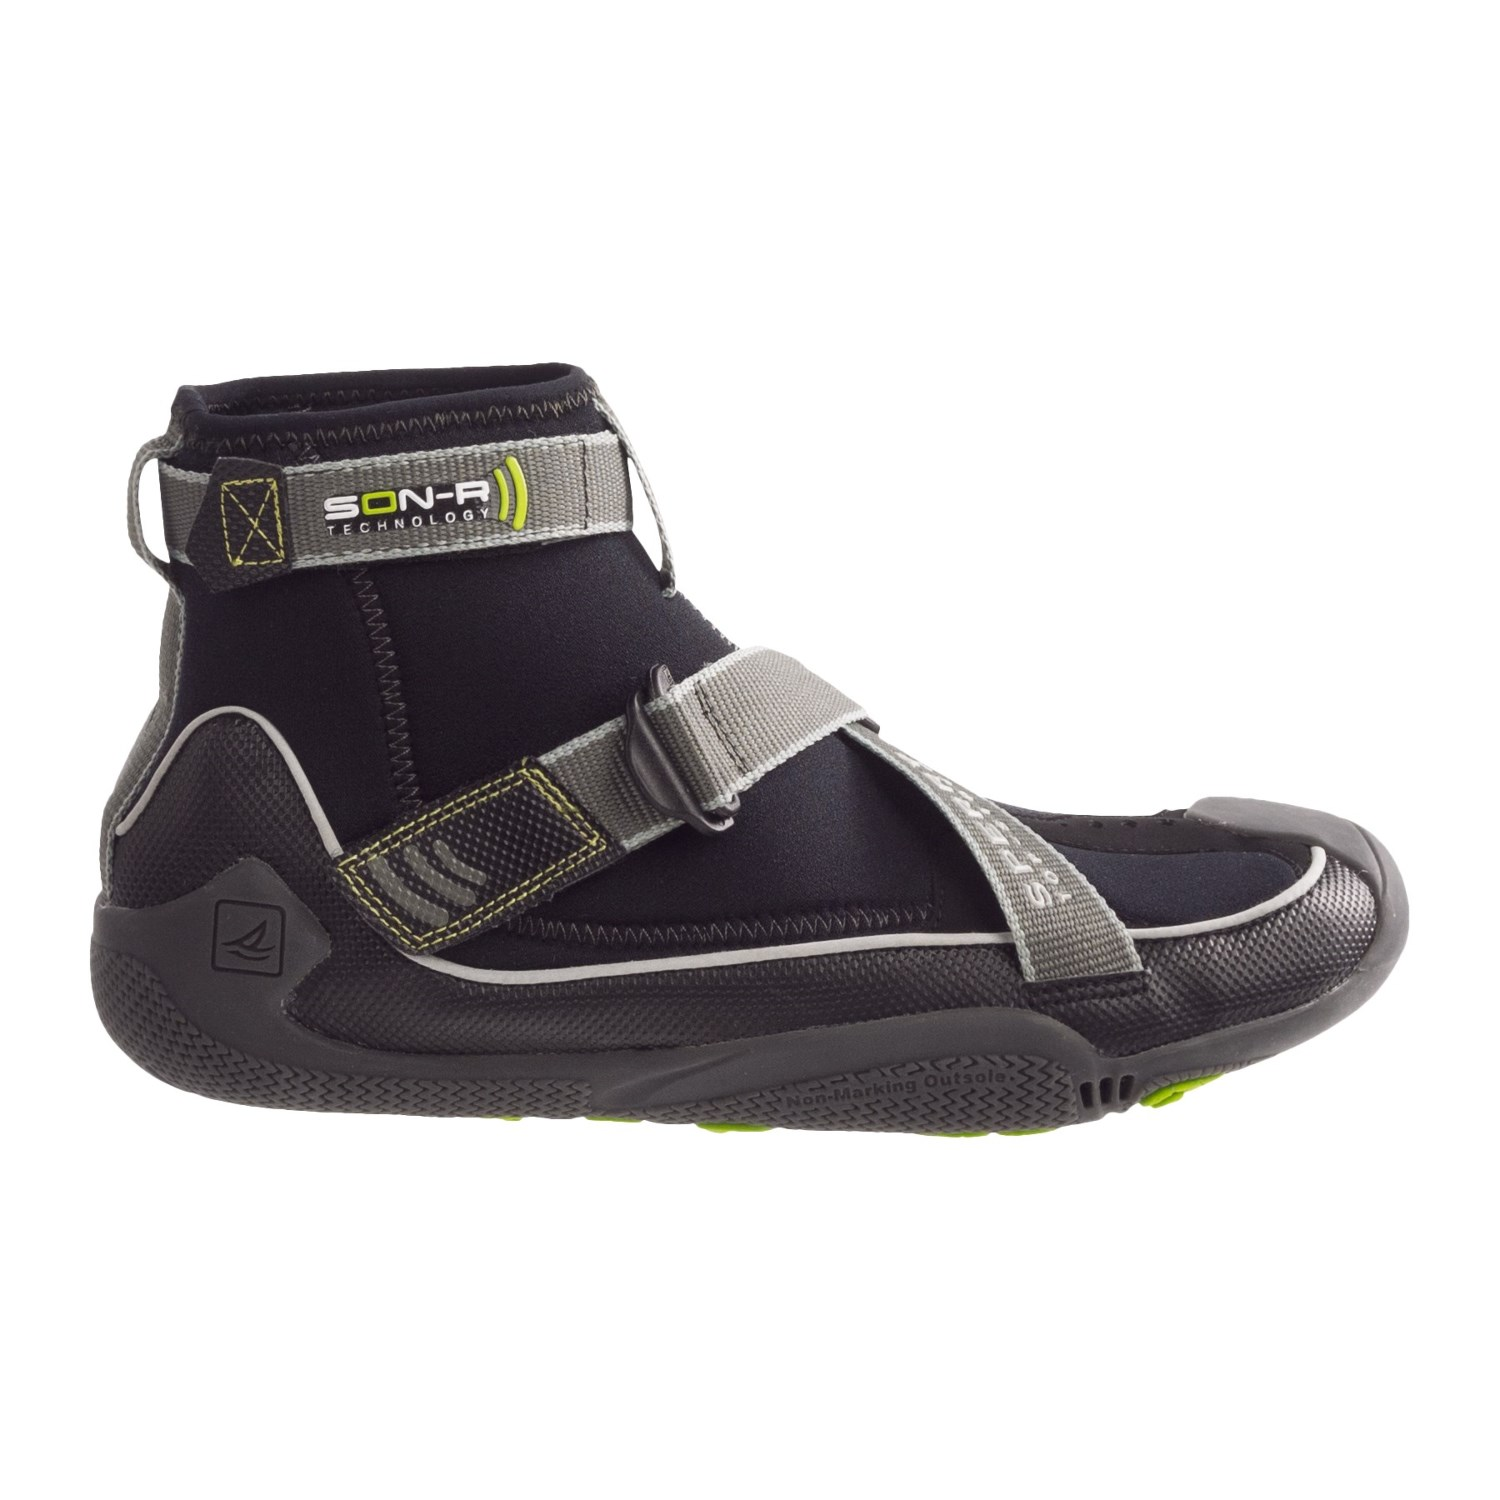 Mens Rain Shoes Clearance Bing Images